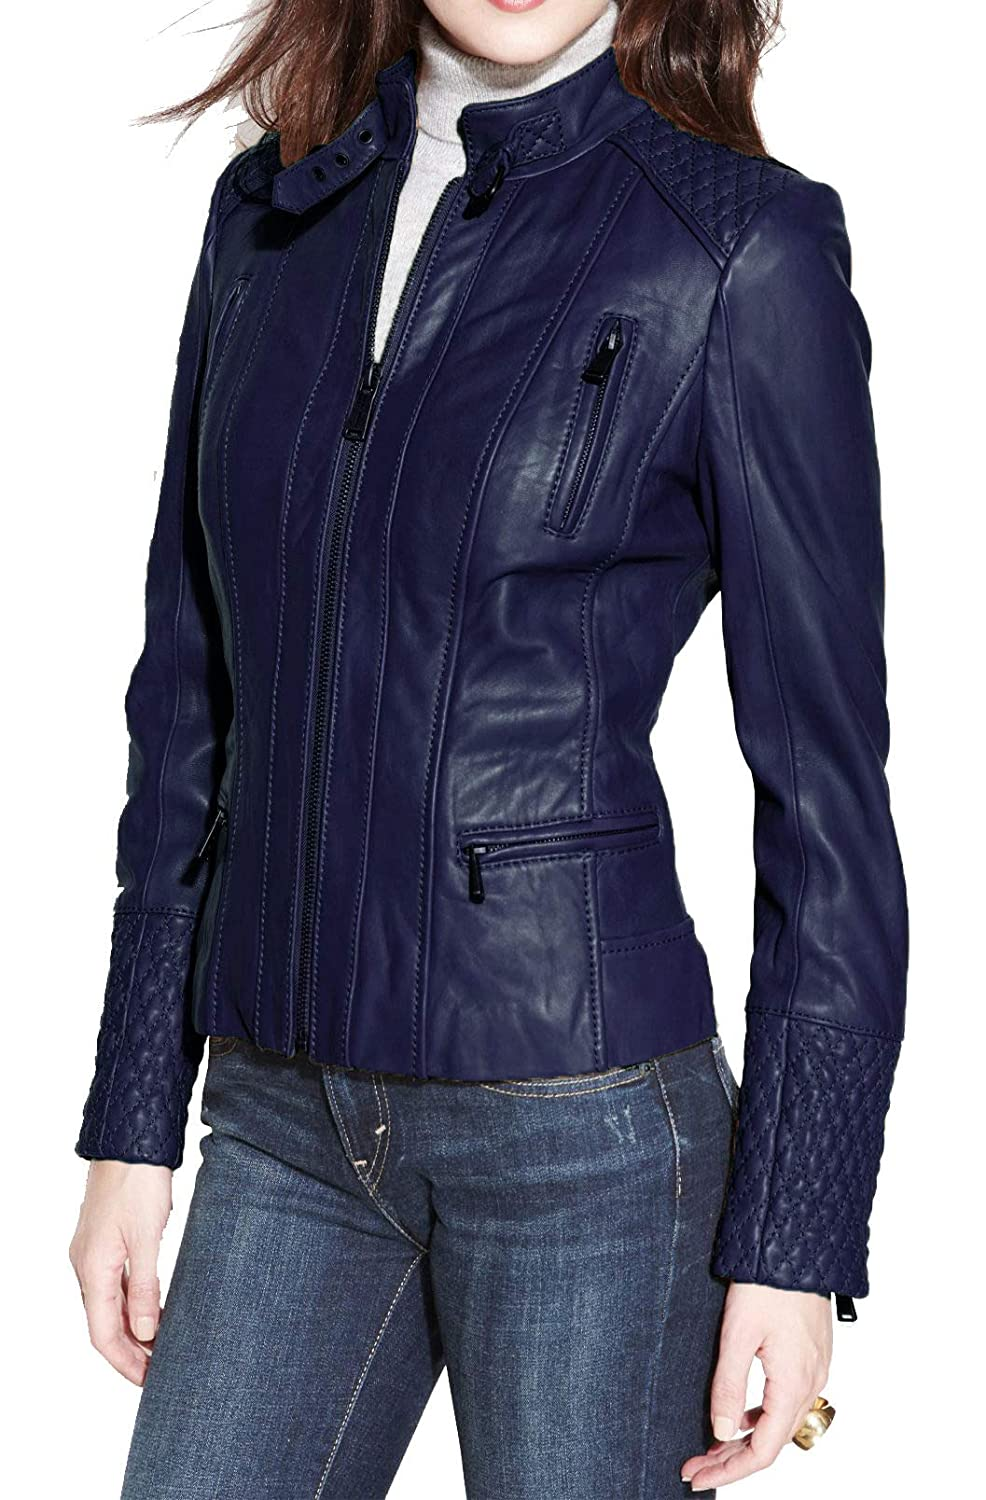 bluee Alishbah Women's Leather Jacket Stylish Motorcycle Biker Genuine Lambskin WJ 295